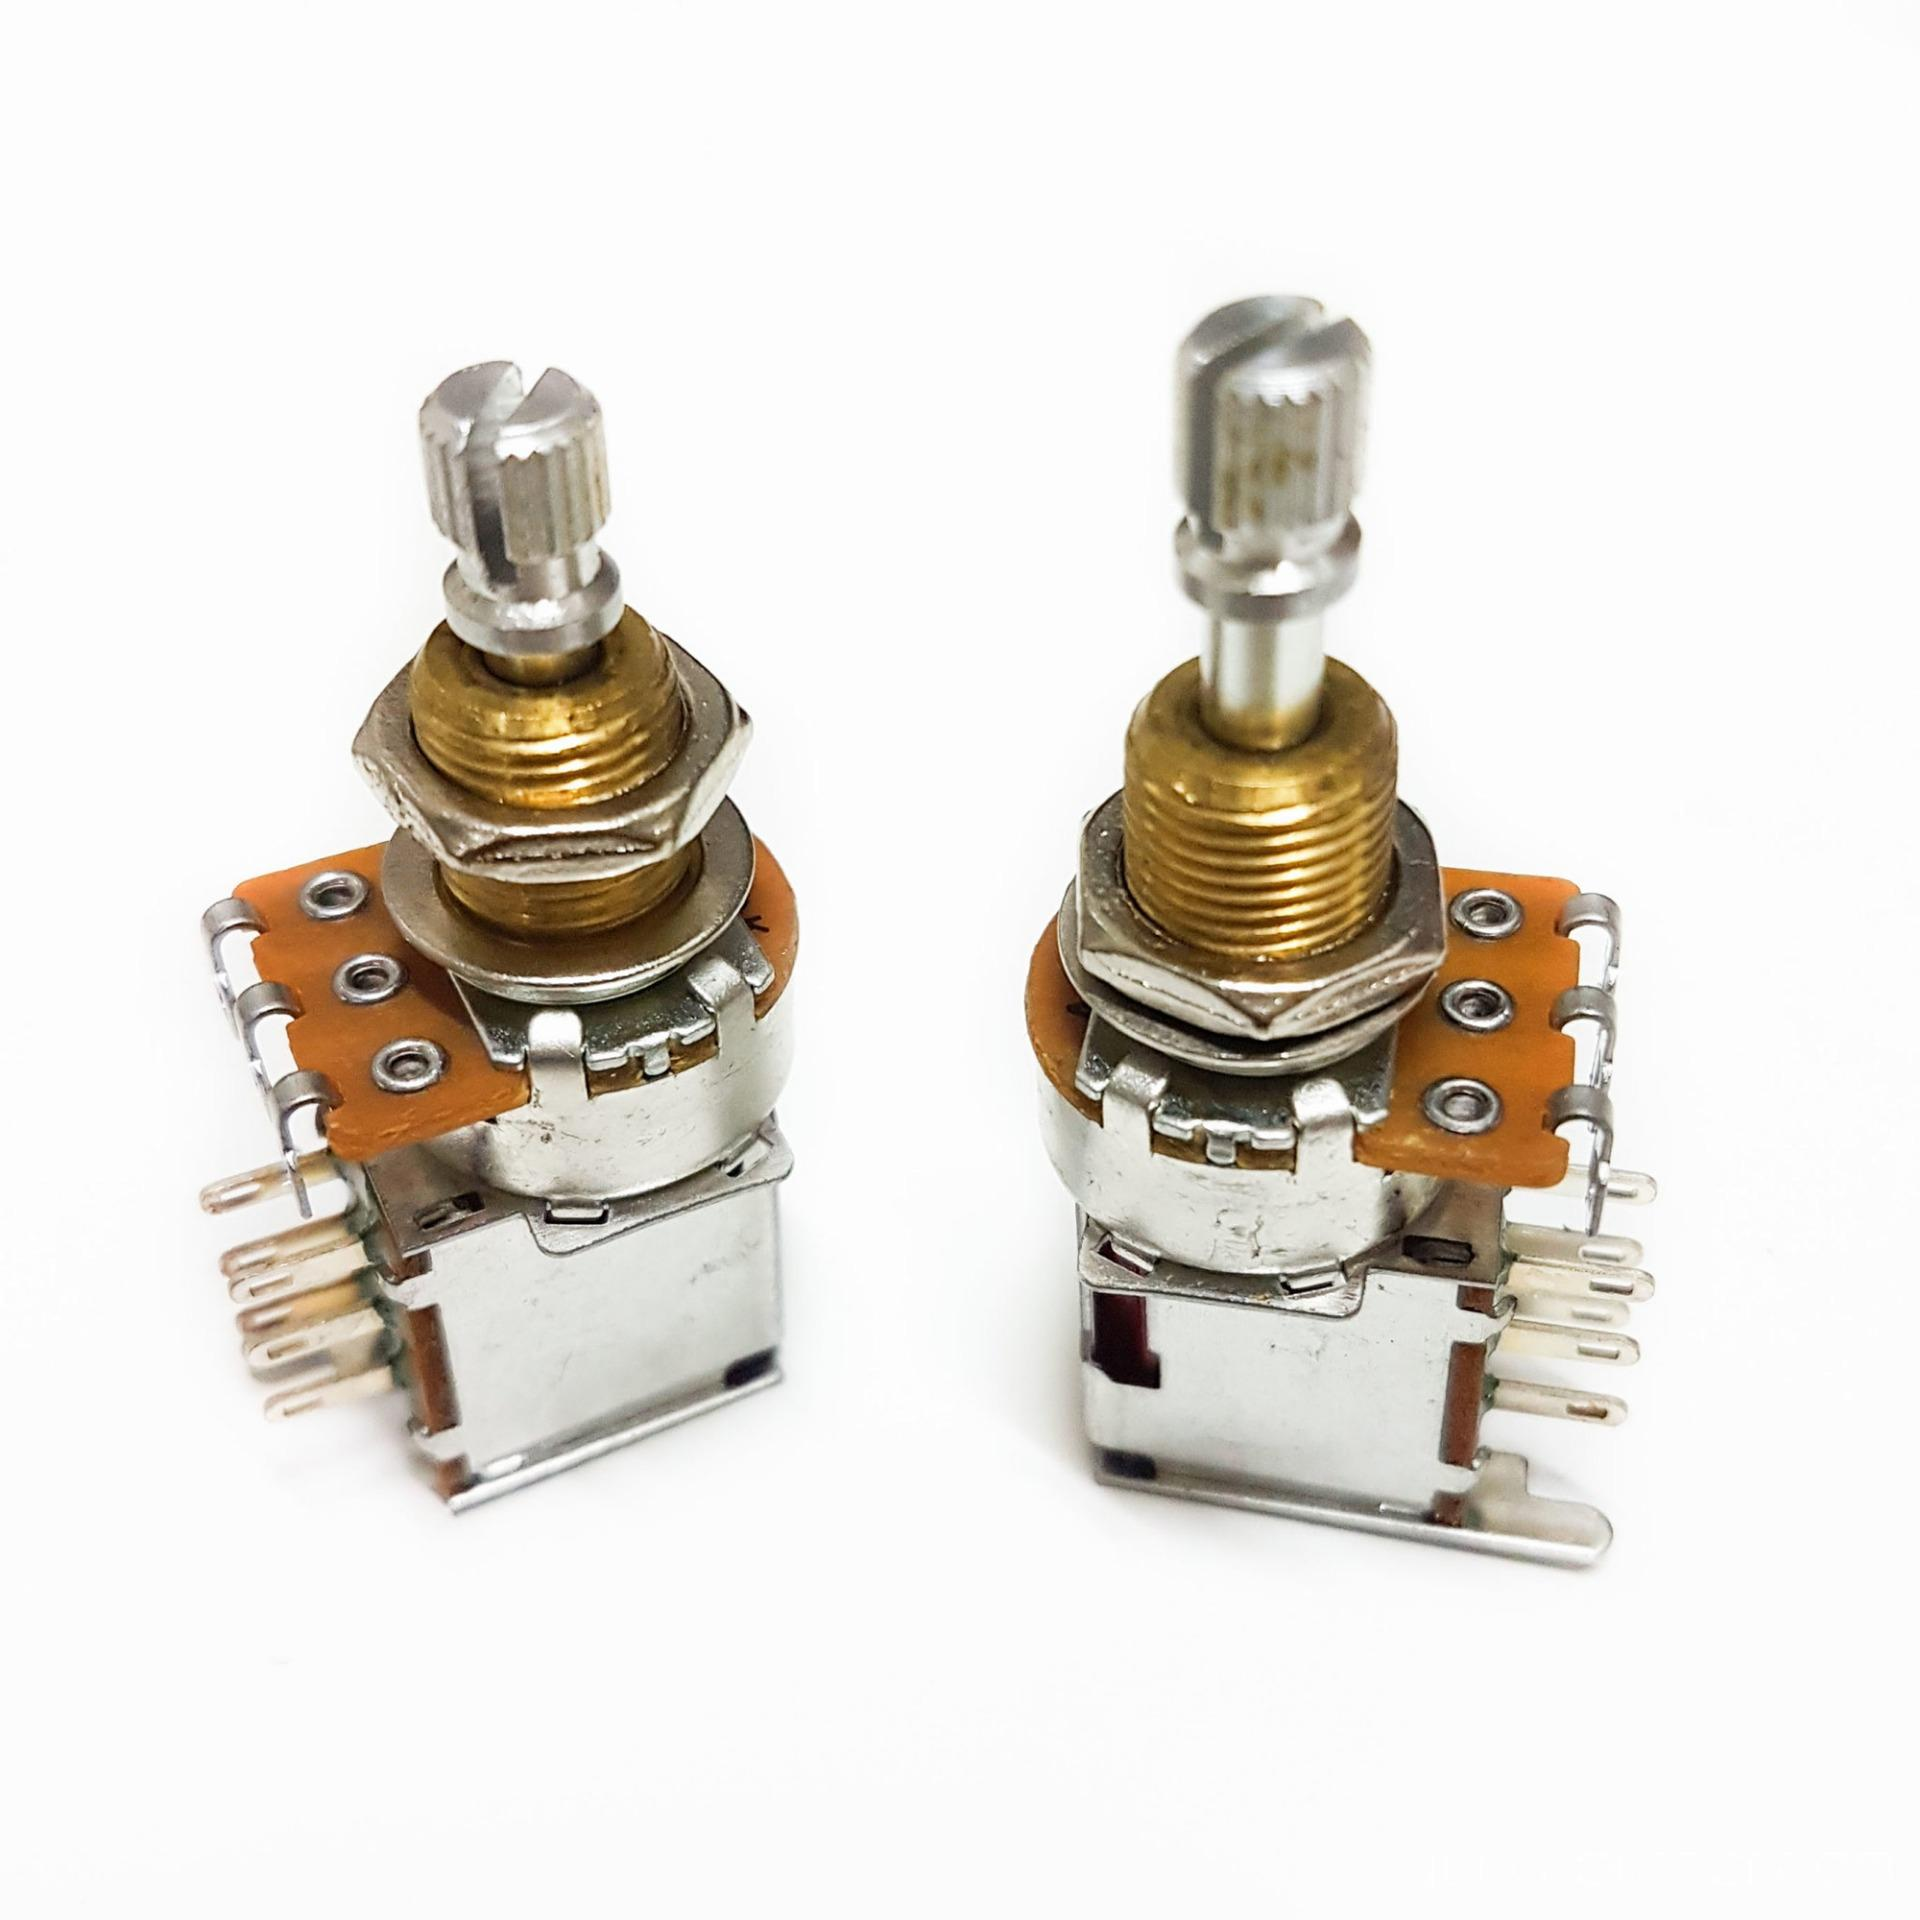 Philippines Cts 500k Push Potentiometer Price Comparison Guitar Wiring Harness 1v2t 1 Jack 3 Pots 5 Way Switch For Fender